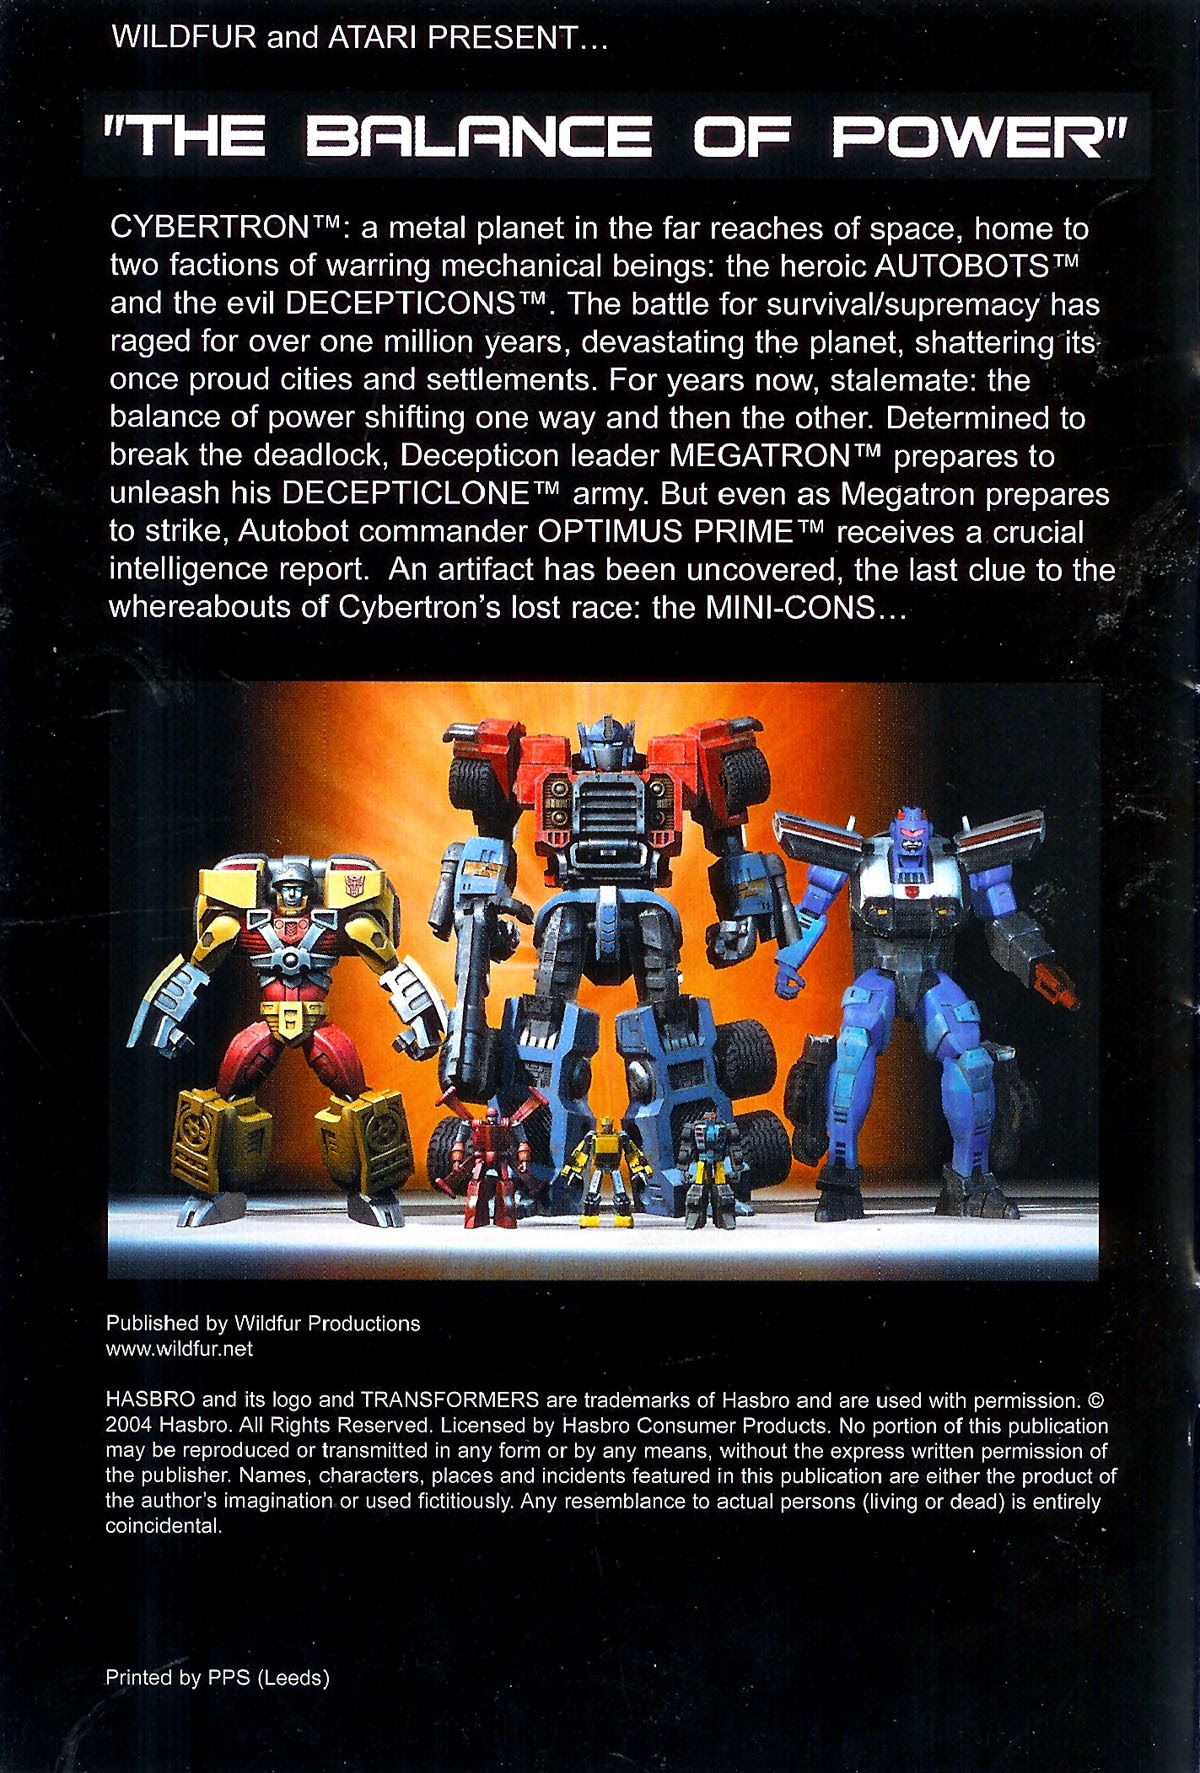 Read online Transformers: The Balance of Power comic -  Issue # Full - 3